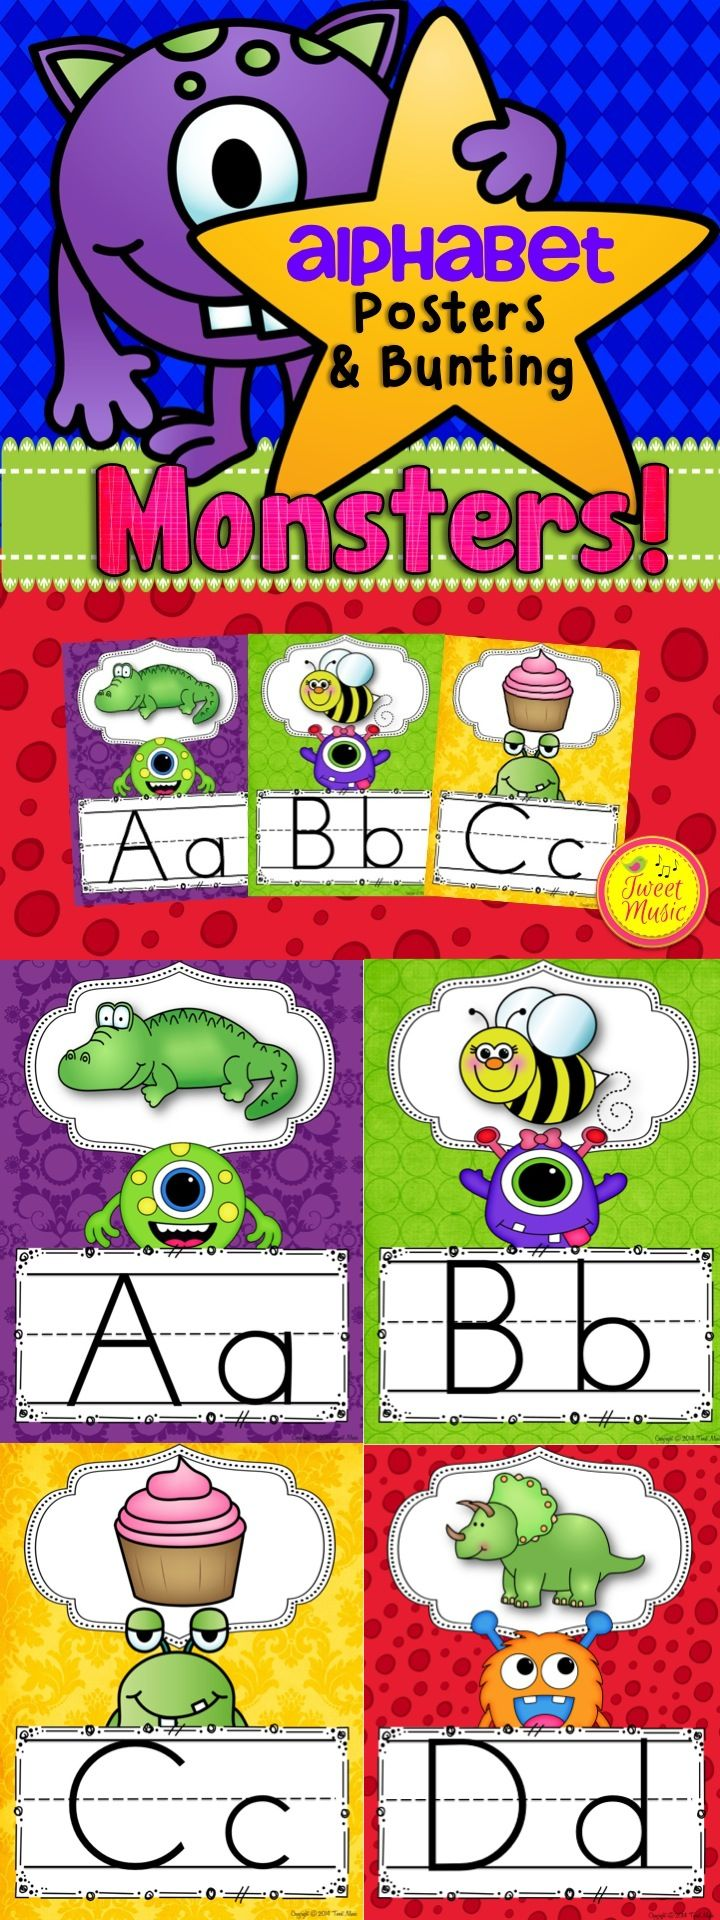 Decorate your classroom this year with this adorable Monsters Themed Classroom decor set. Alphabet Posters & Bunting (includes welcome bunting & editable bunting!) $